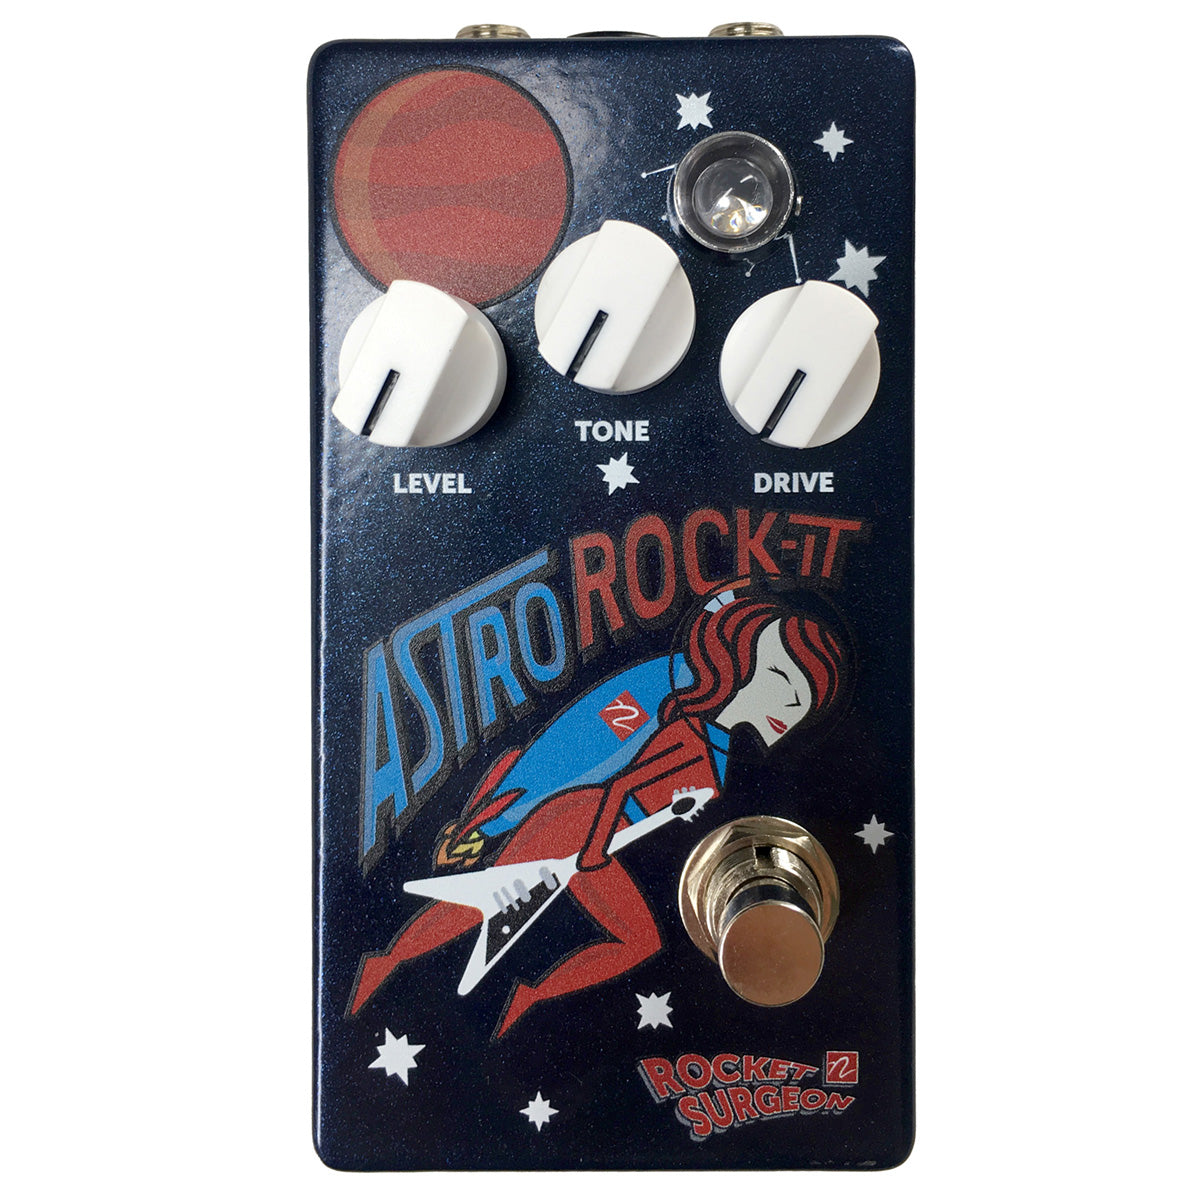 Astro Rockit Overdrive Guitar Effect Pedal